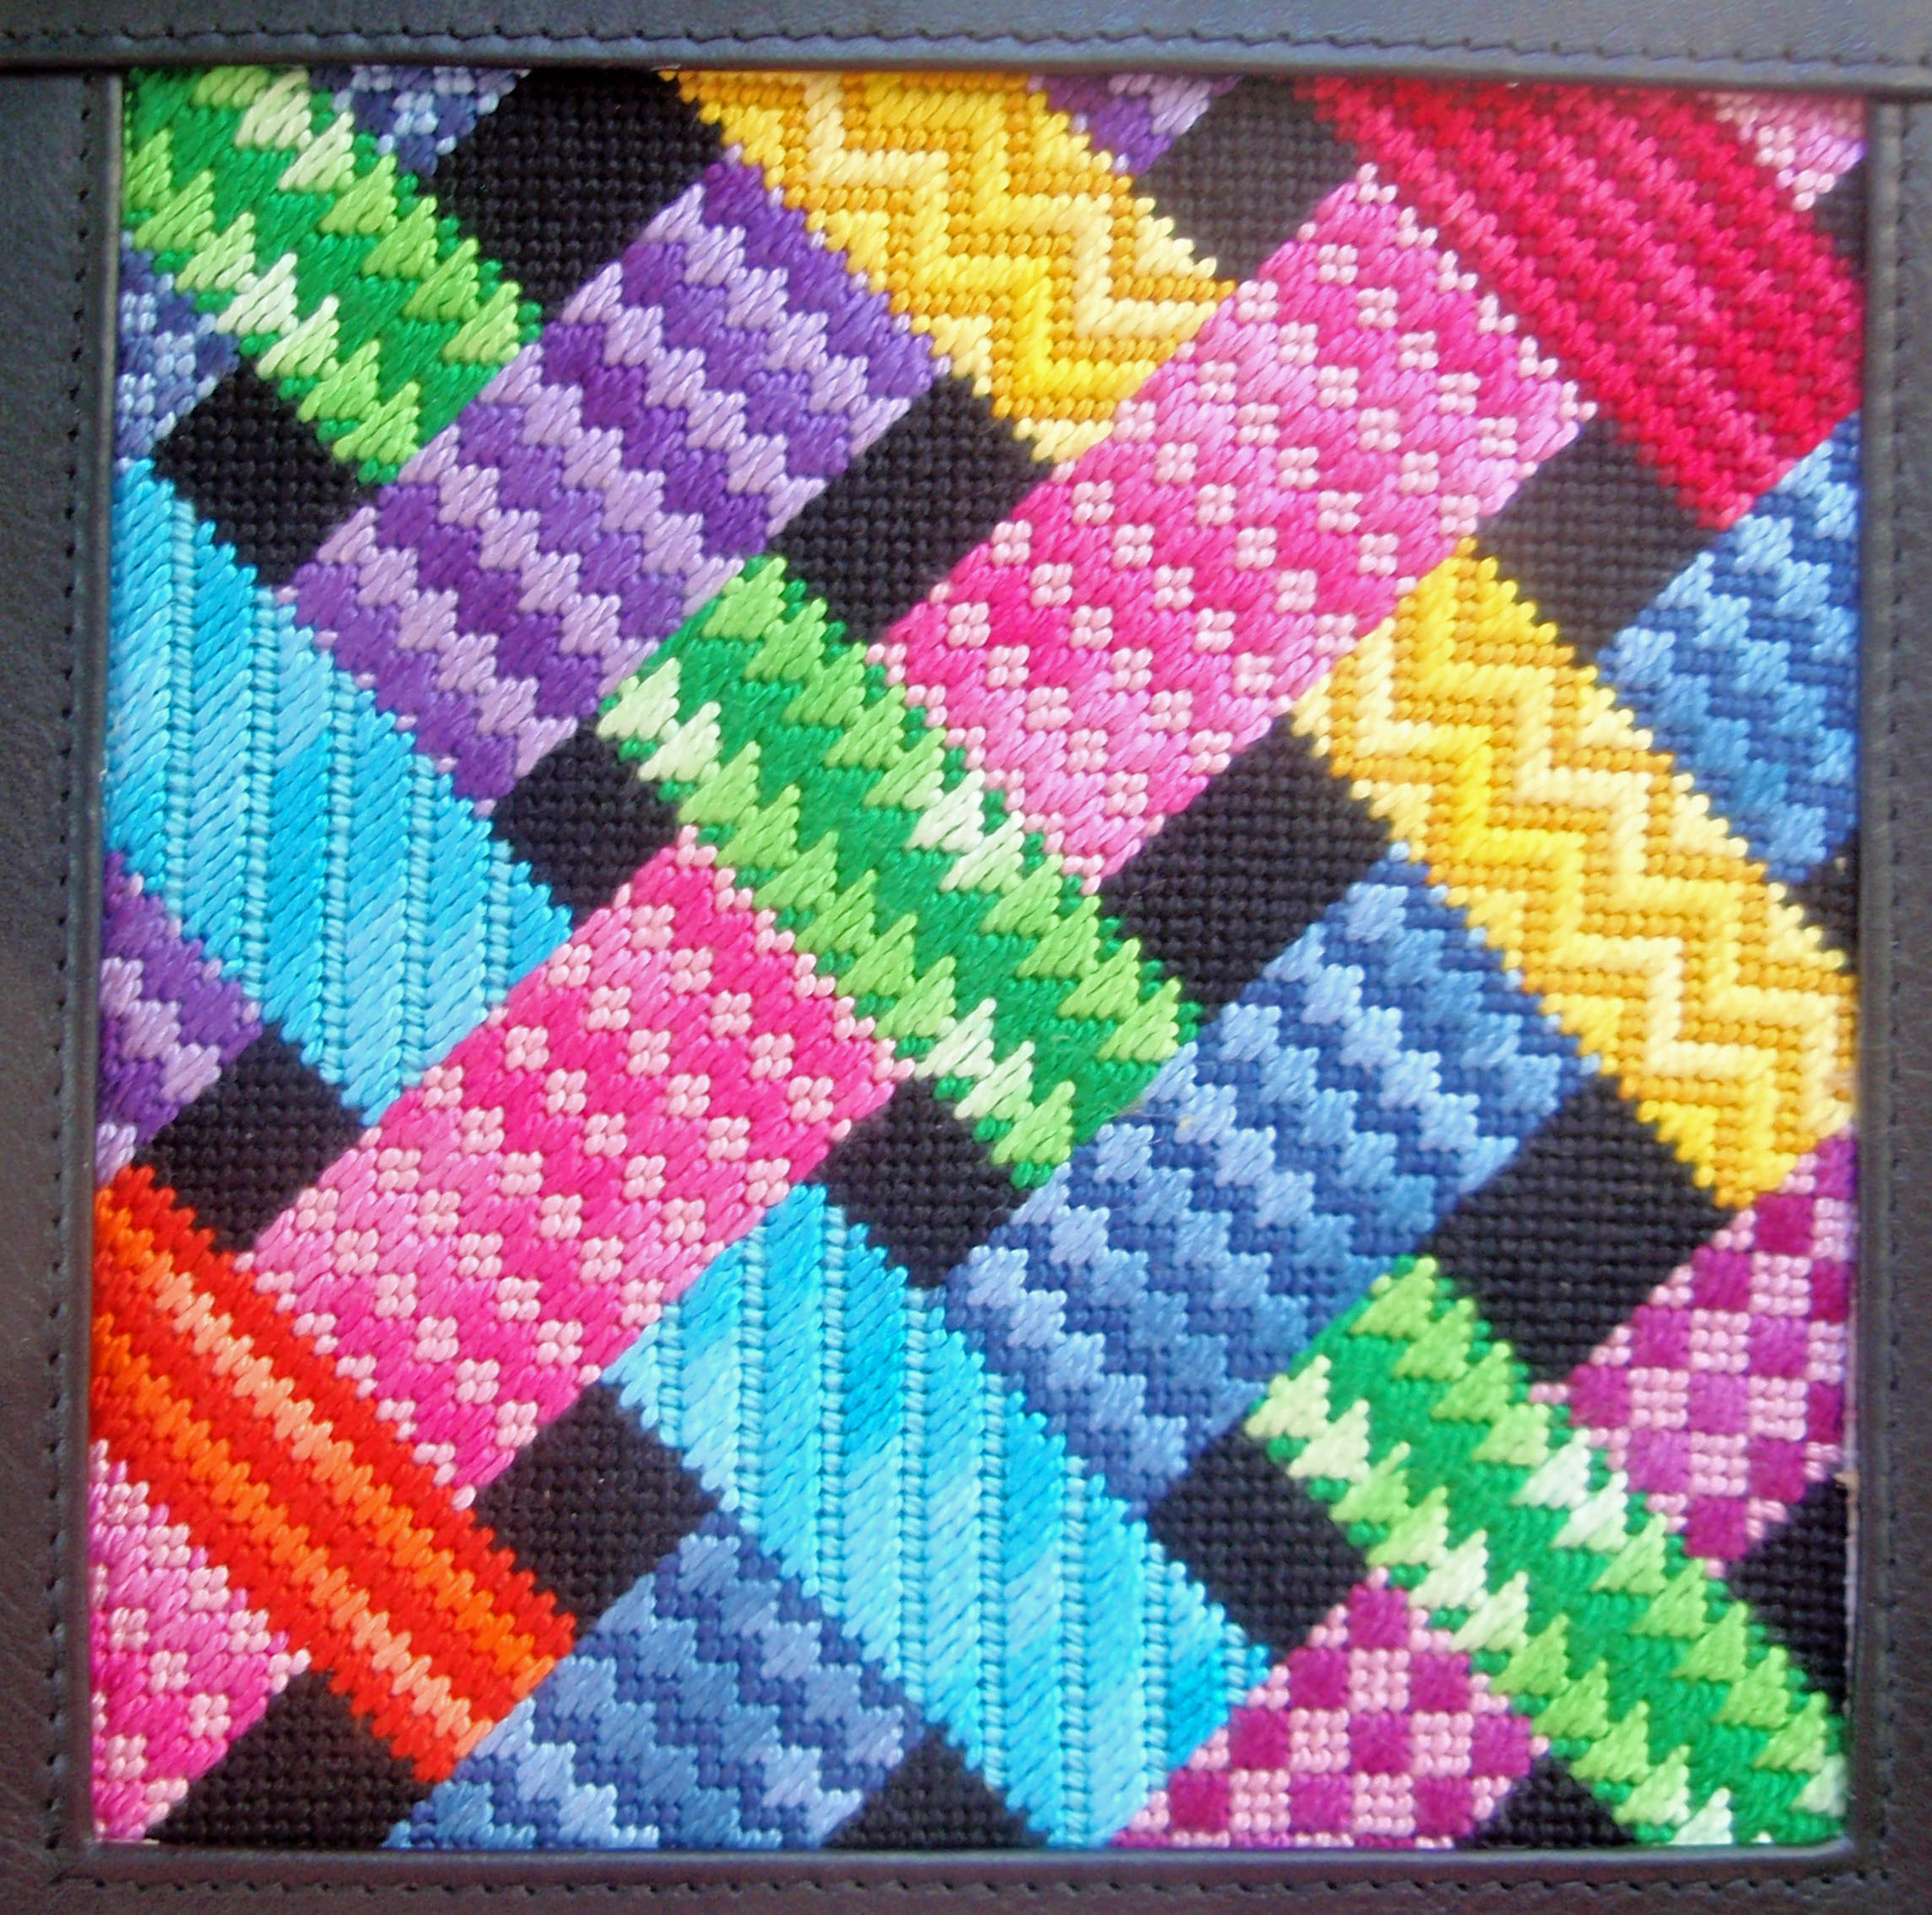 Painted Stitches Ribbon Sampler